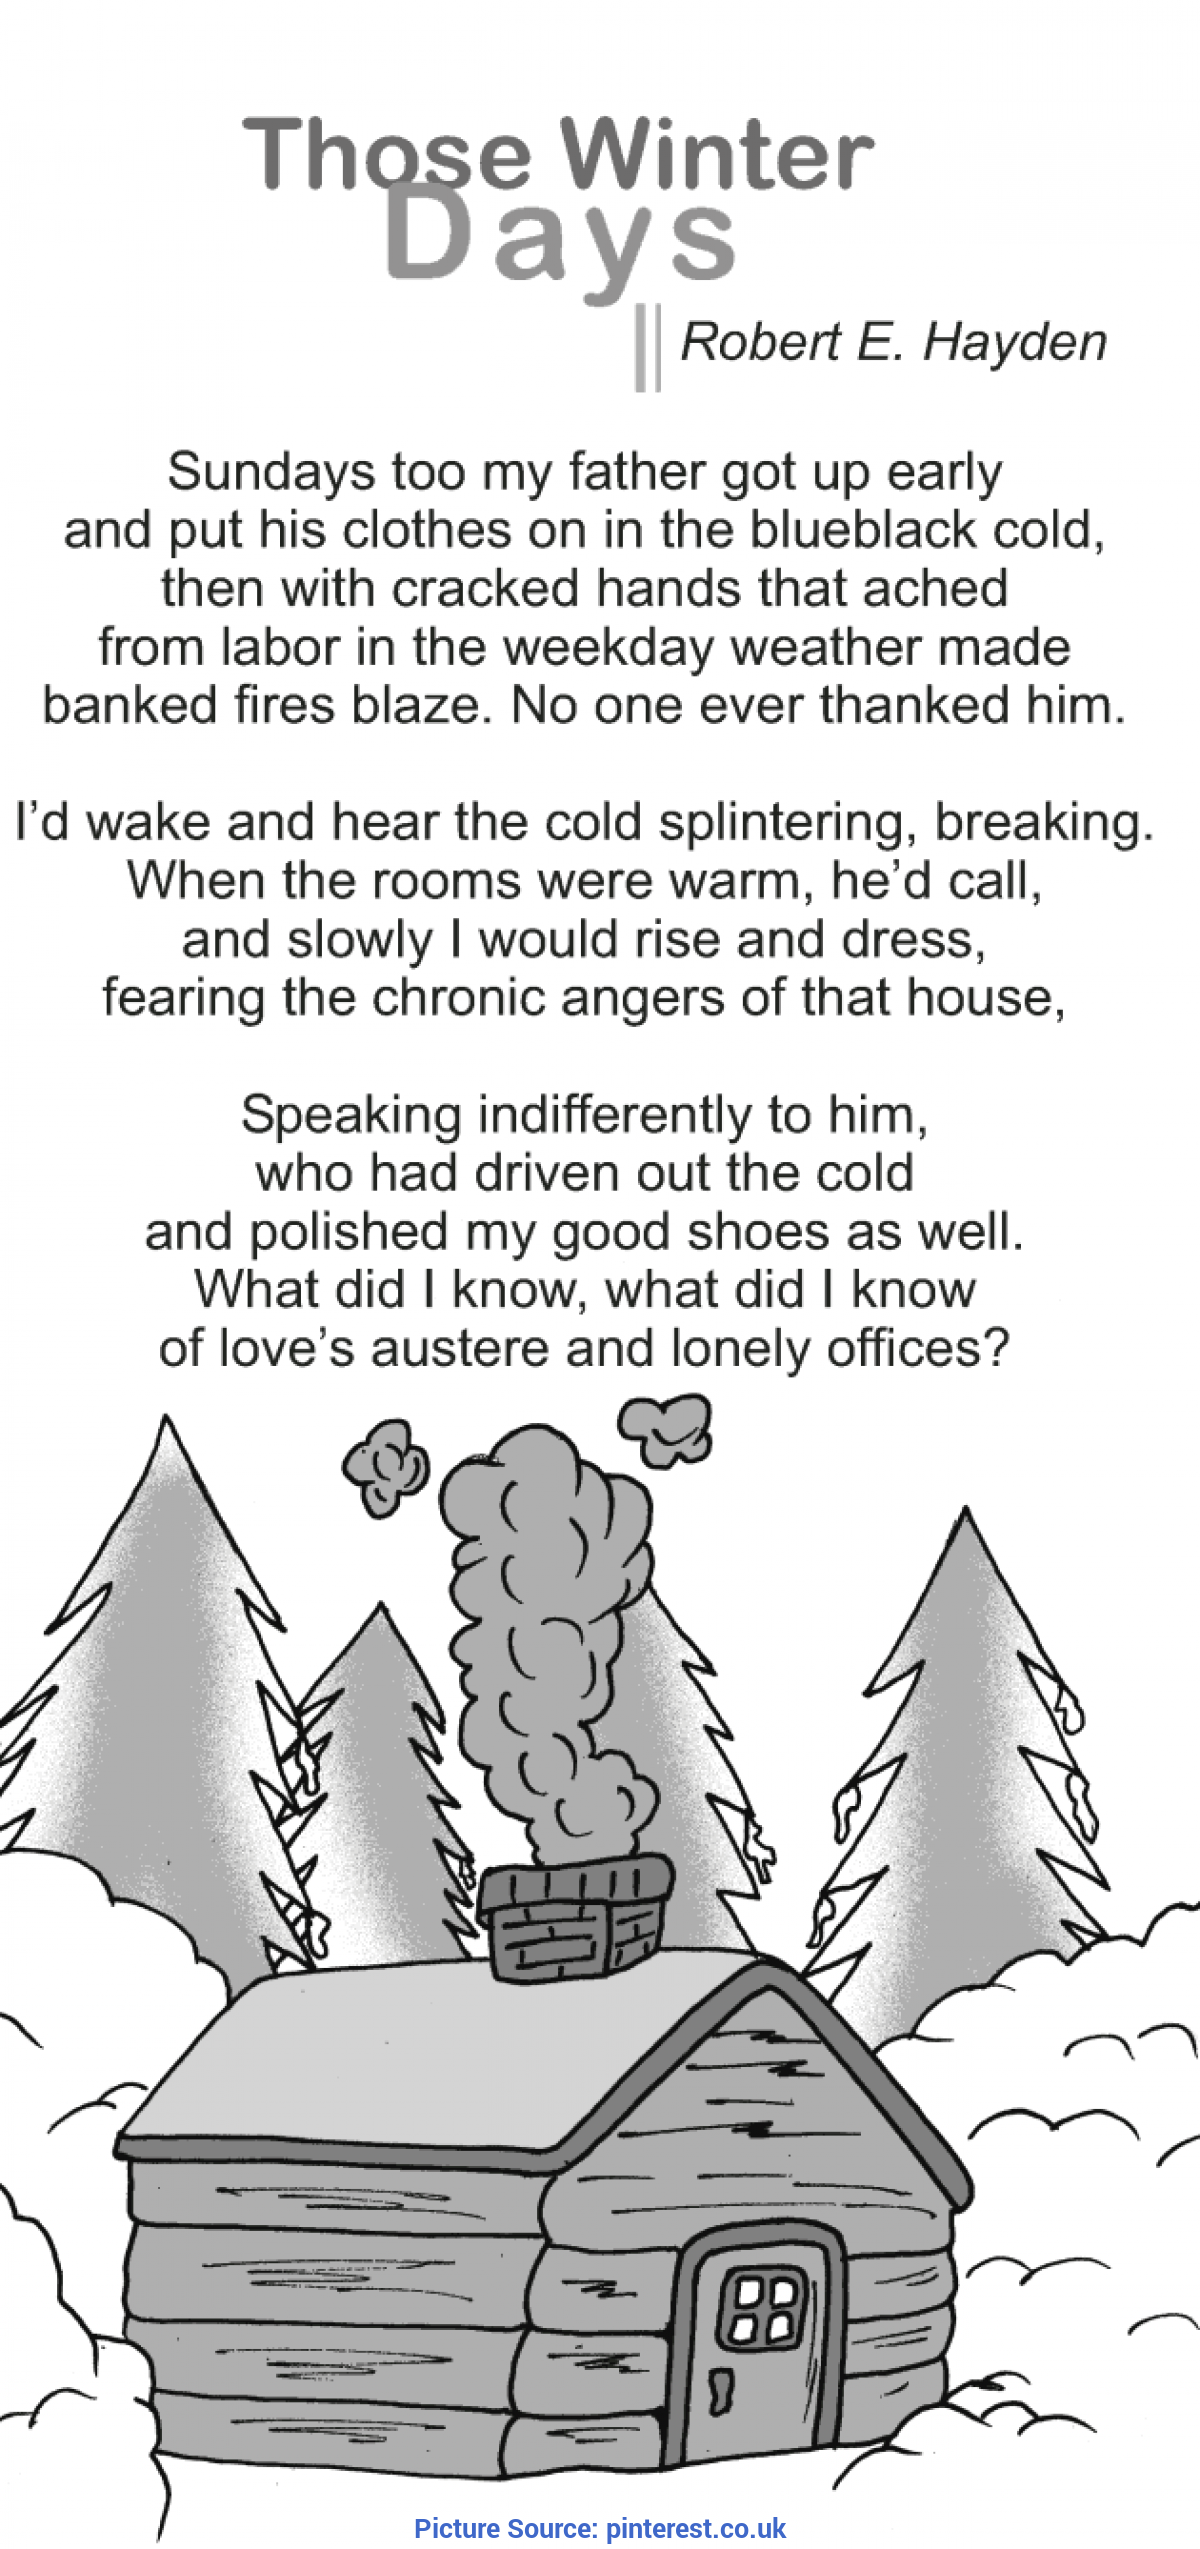 Excellent Grade 9 Lessons In English Grade 9 Reading Lesson 5 Poetry - Those Winter Days (1)   Englis